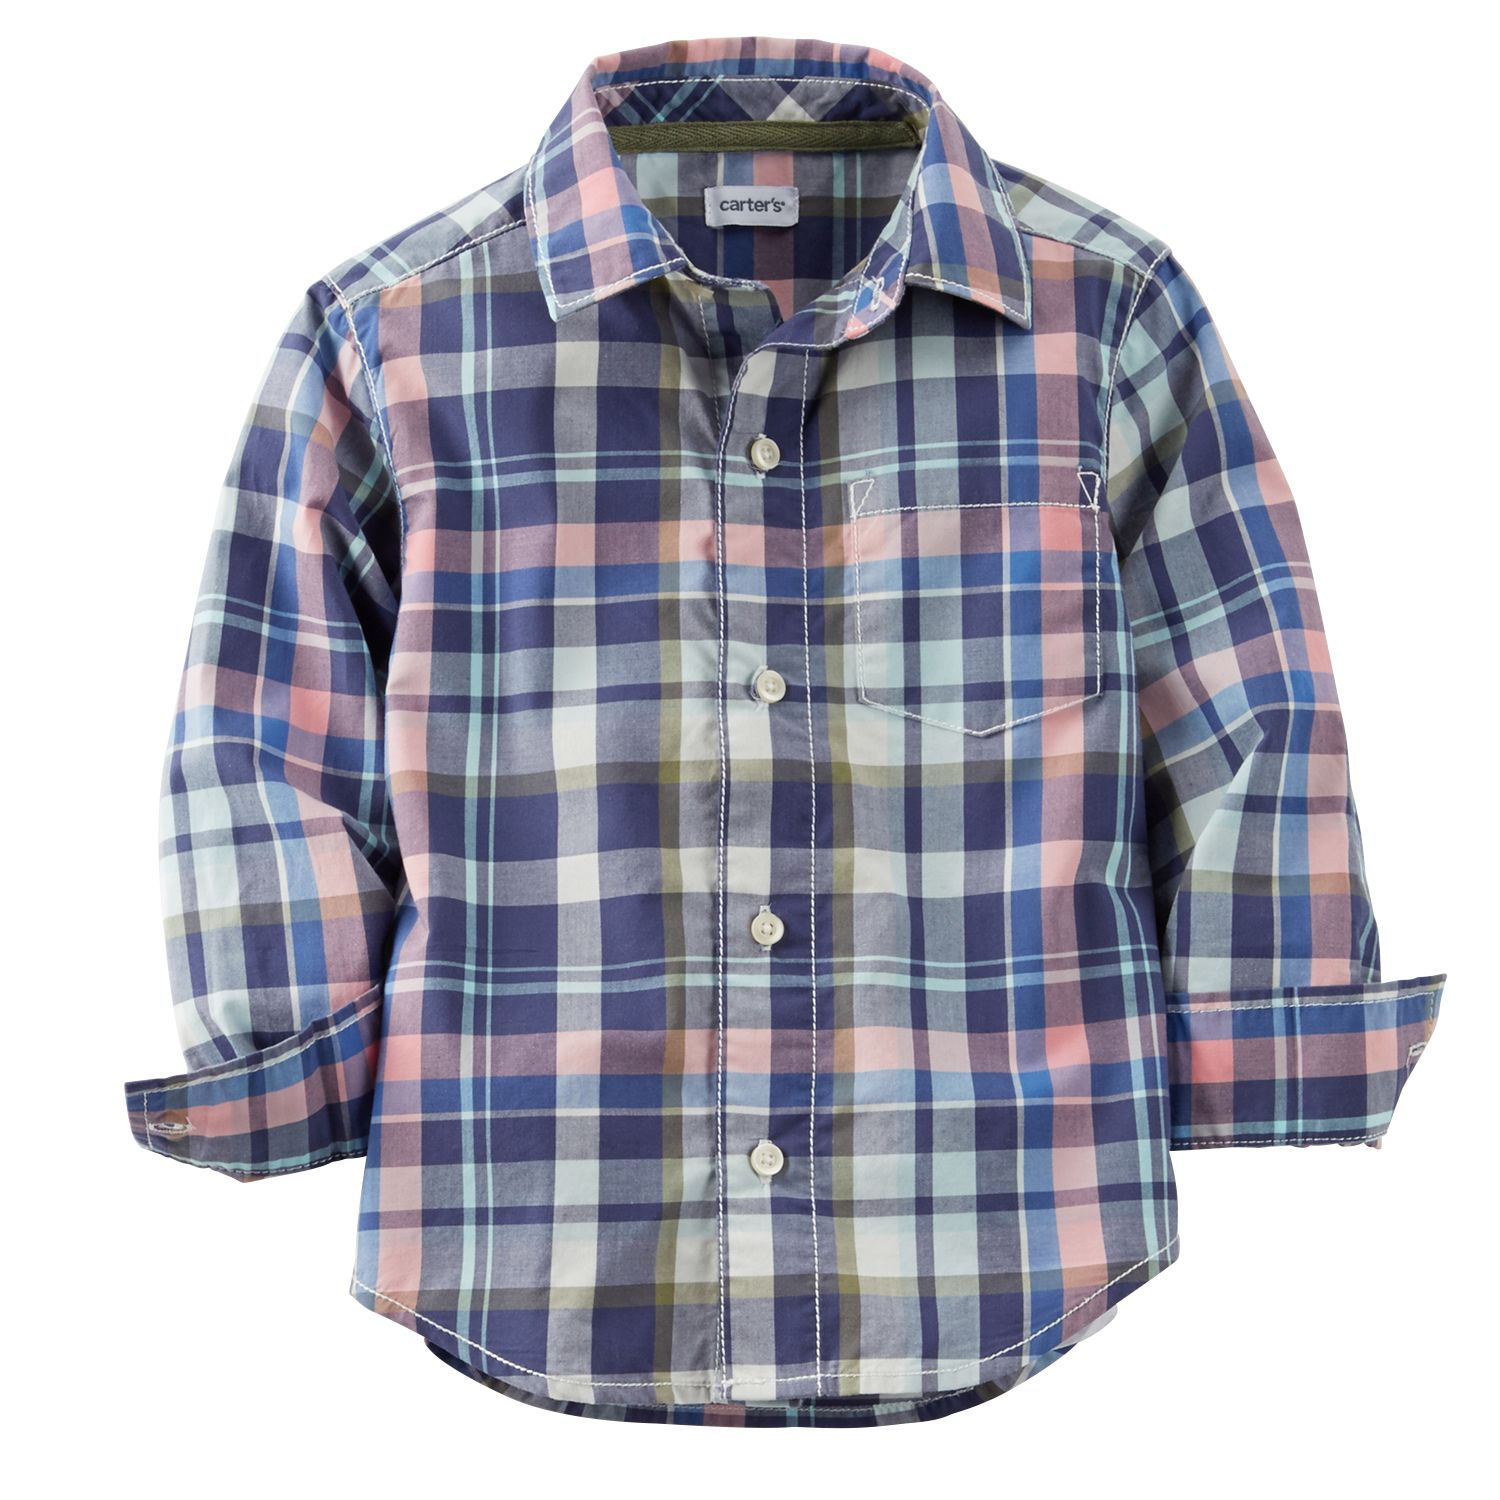 Blue Carters Boys Woven Oxford Striped Button-Down Shirt Lt